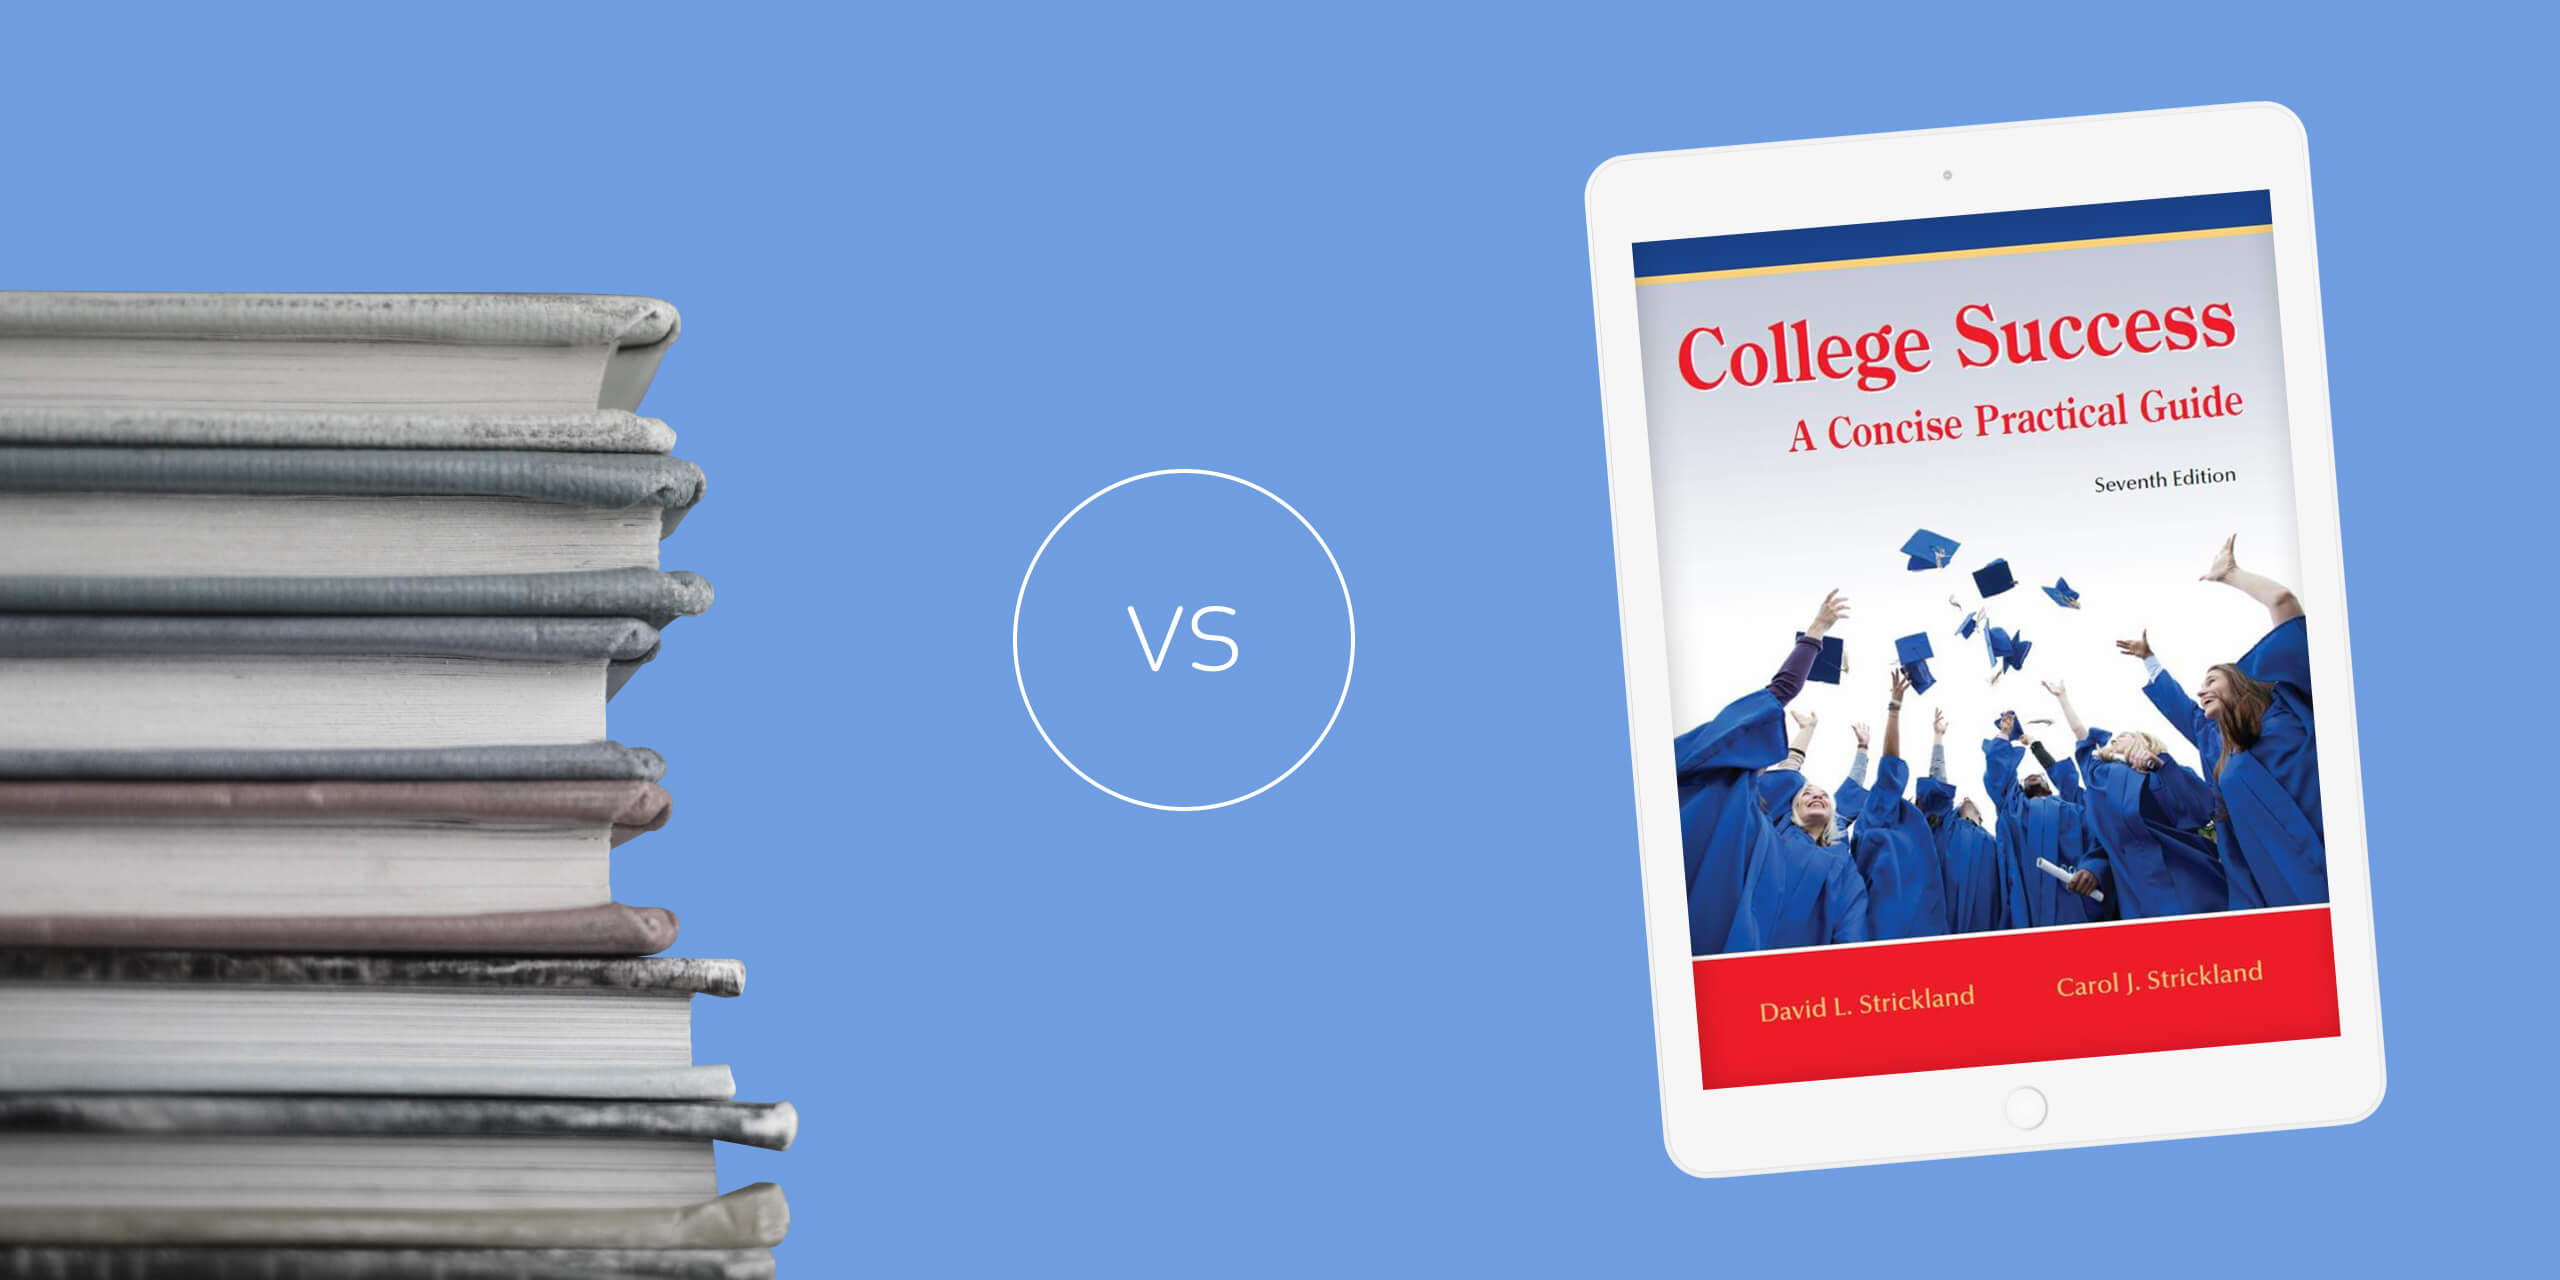 College Success Textbooks: Which Is The Best?